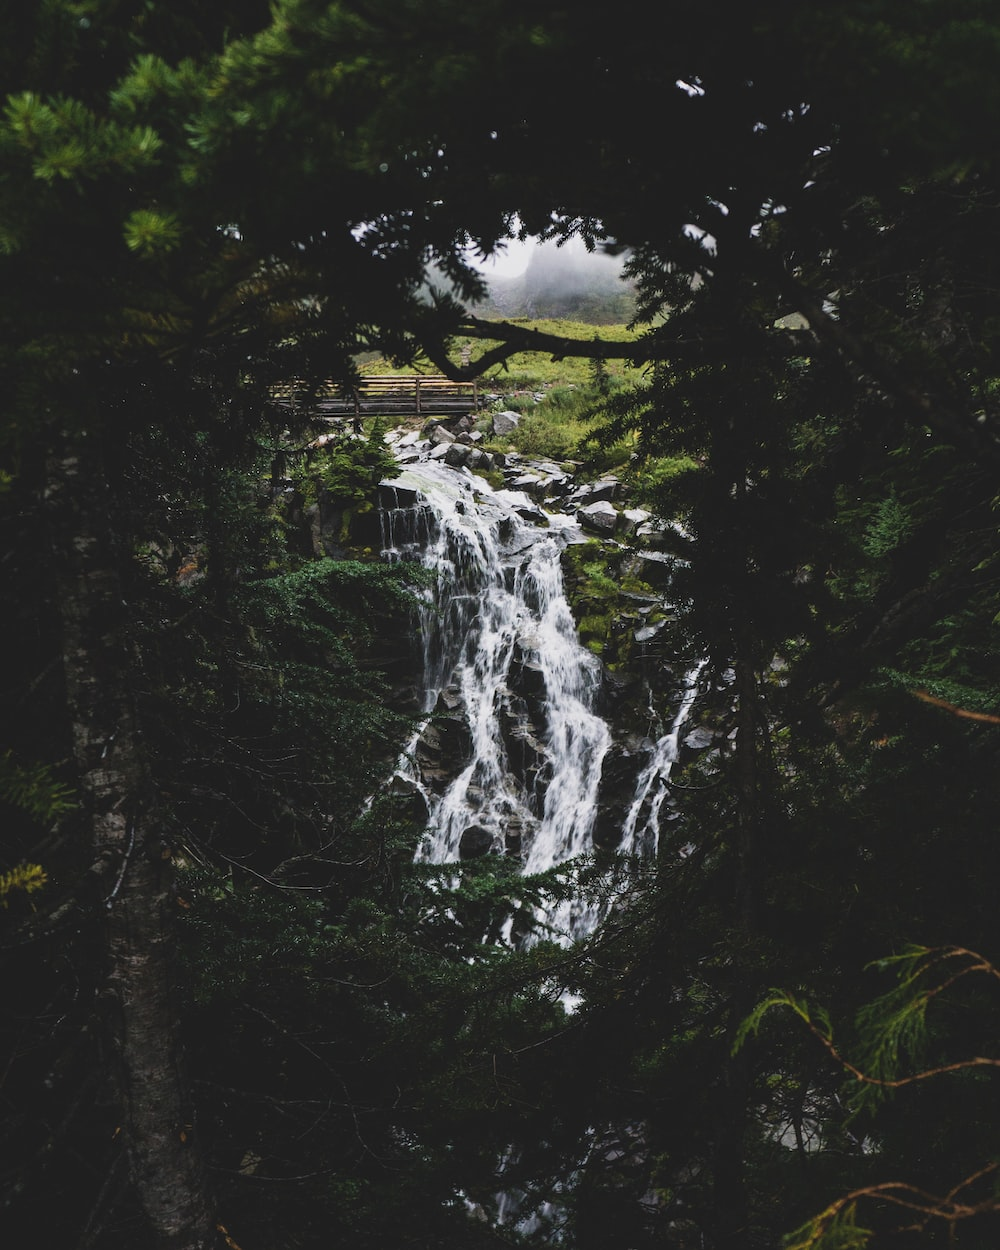 waterfalls near green leafed trees